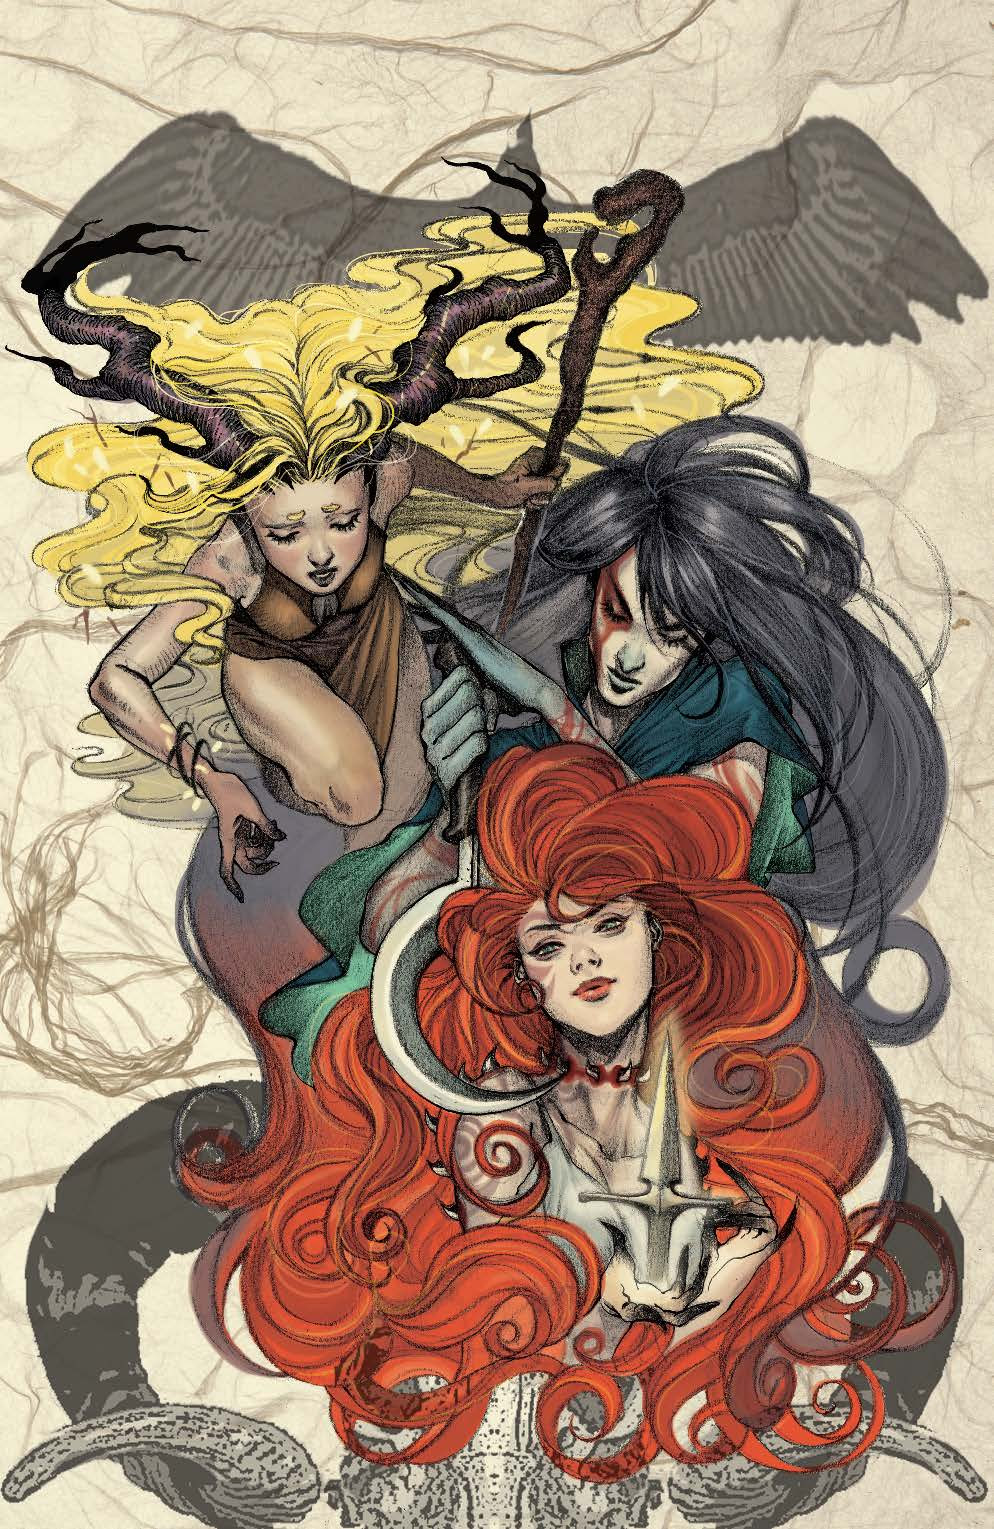 Toil and Trouble Incentive Cover